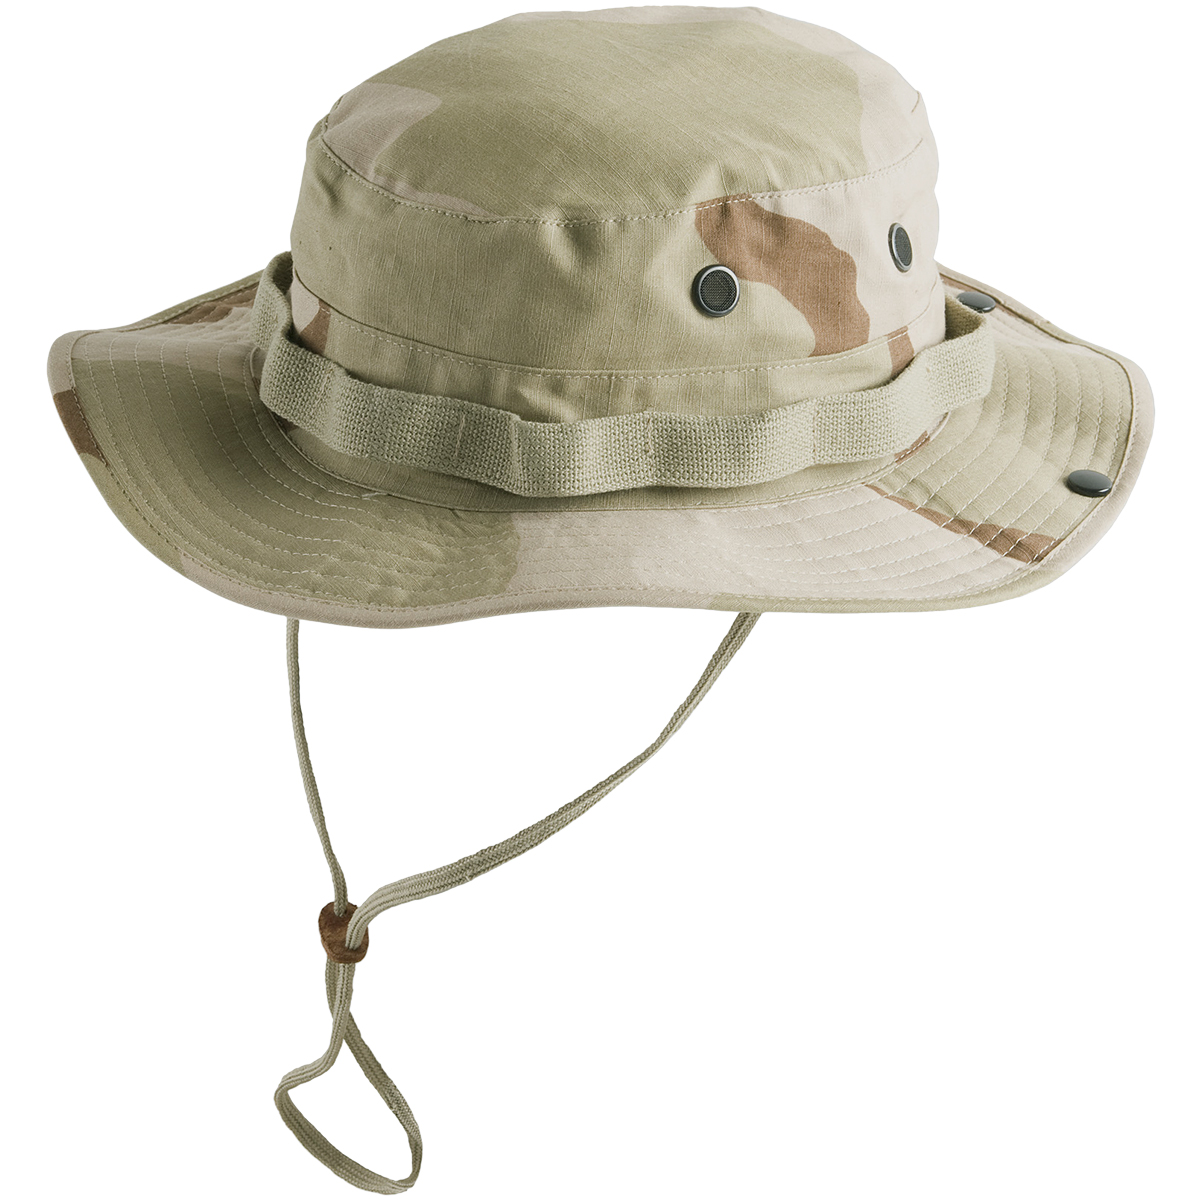 a72d37c6f96 Details about Helikon Army Combat GI Boonie Jungle Hat Hiking Cotton Ripstop  Desert Camo S-XL